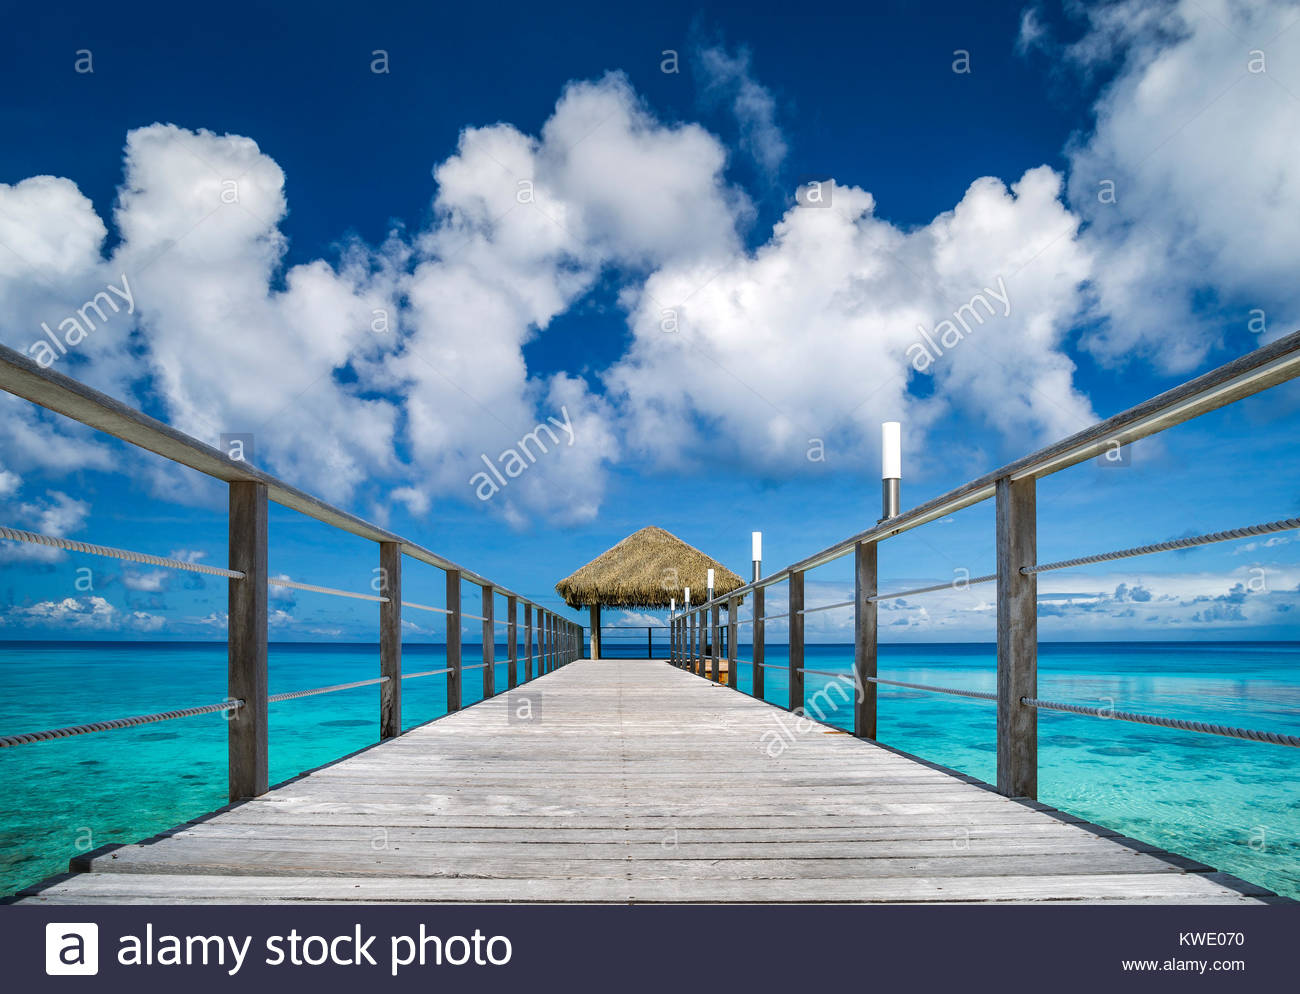 rangiroa-maitai-hotel-pontoon-over-the-l